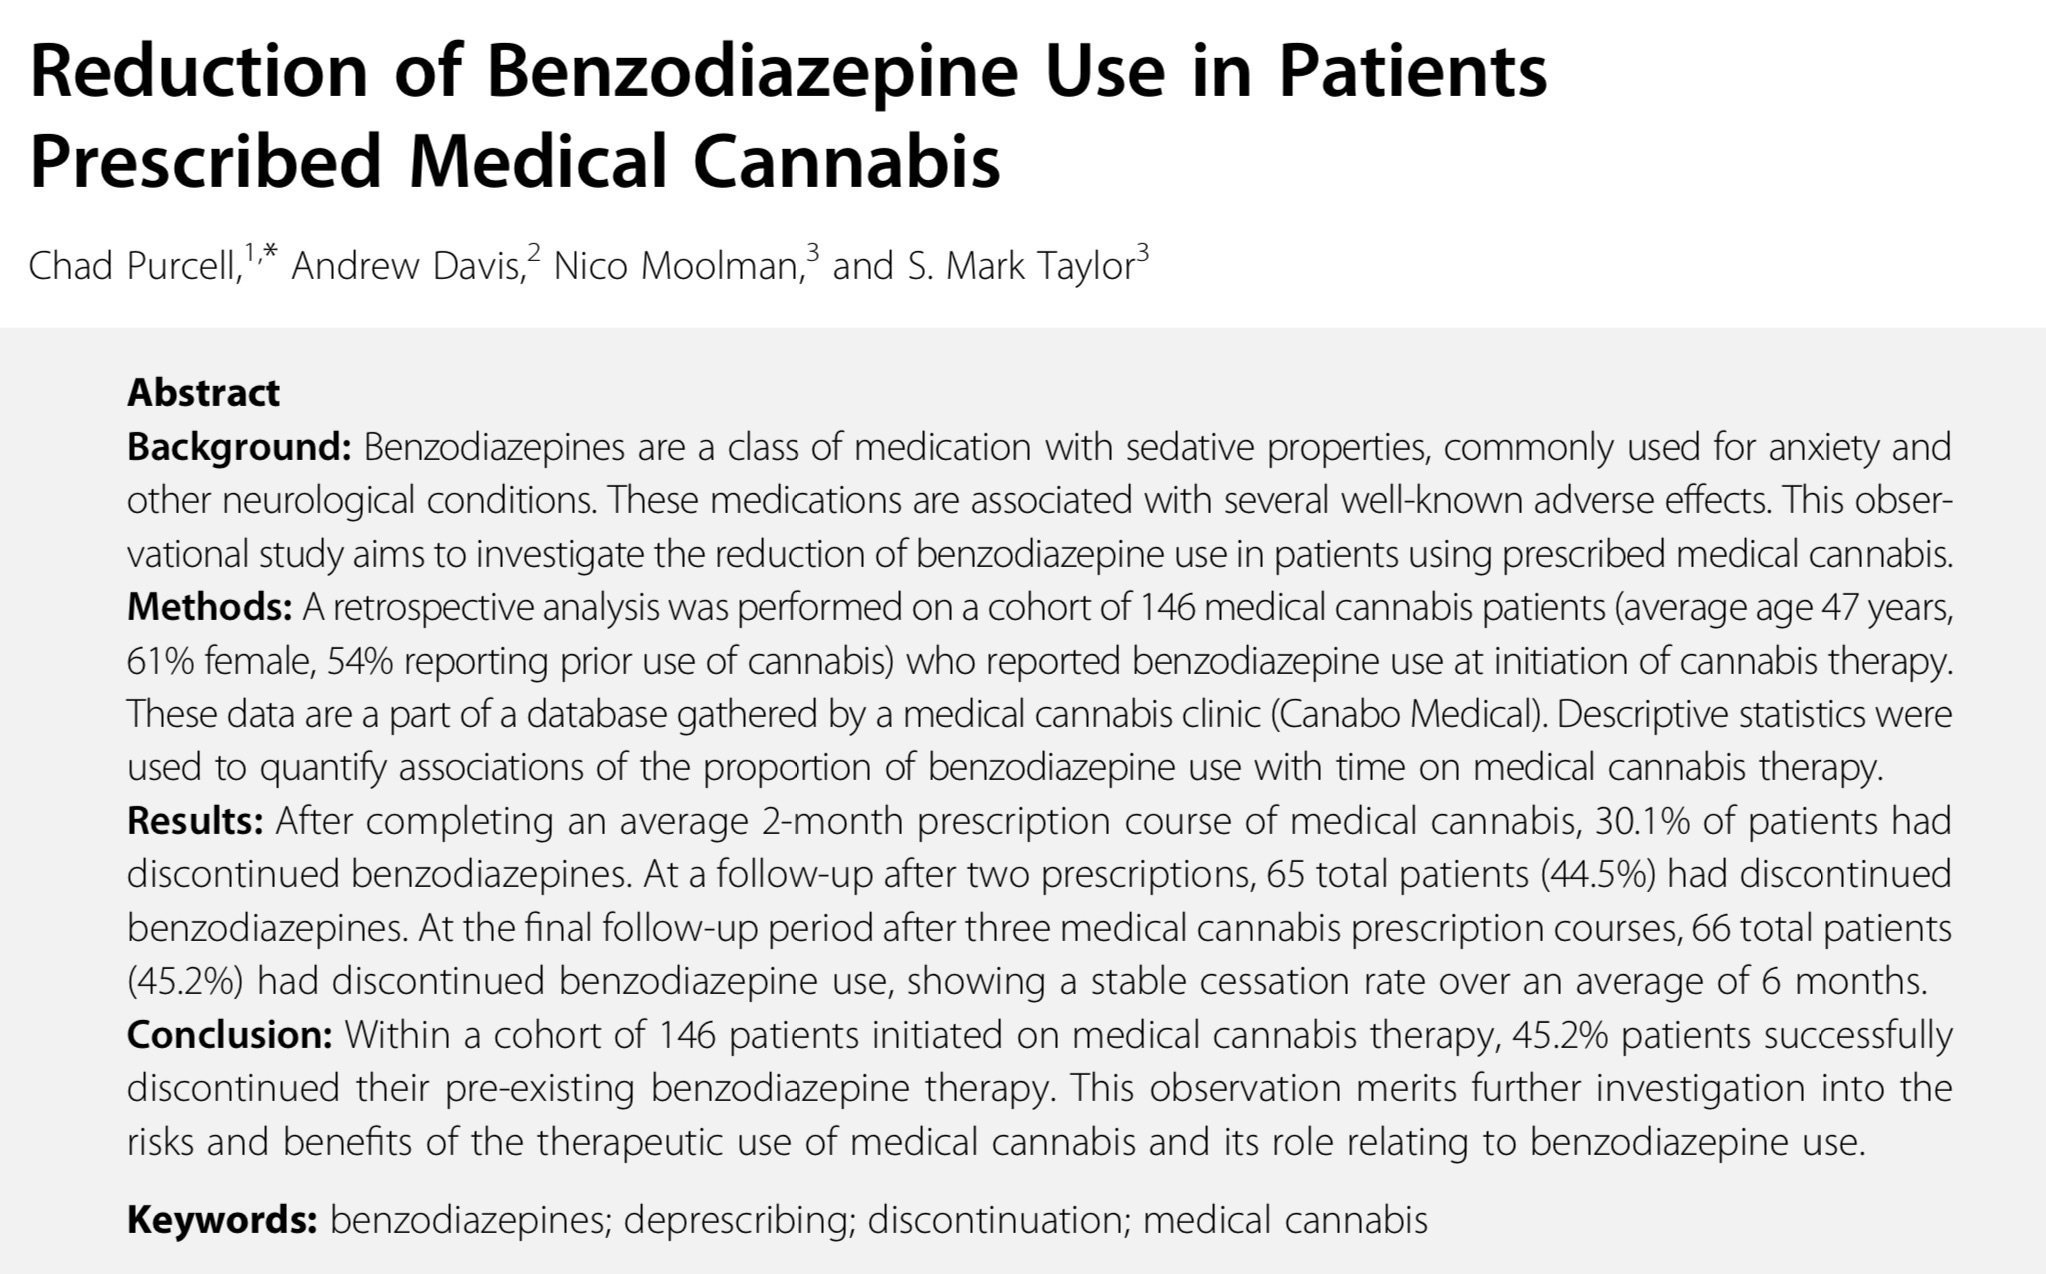 Reduction of Benzodiazepine Use in Patients Prescribed Medical Cannabis - Cannabiscienza